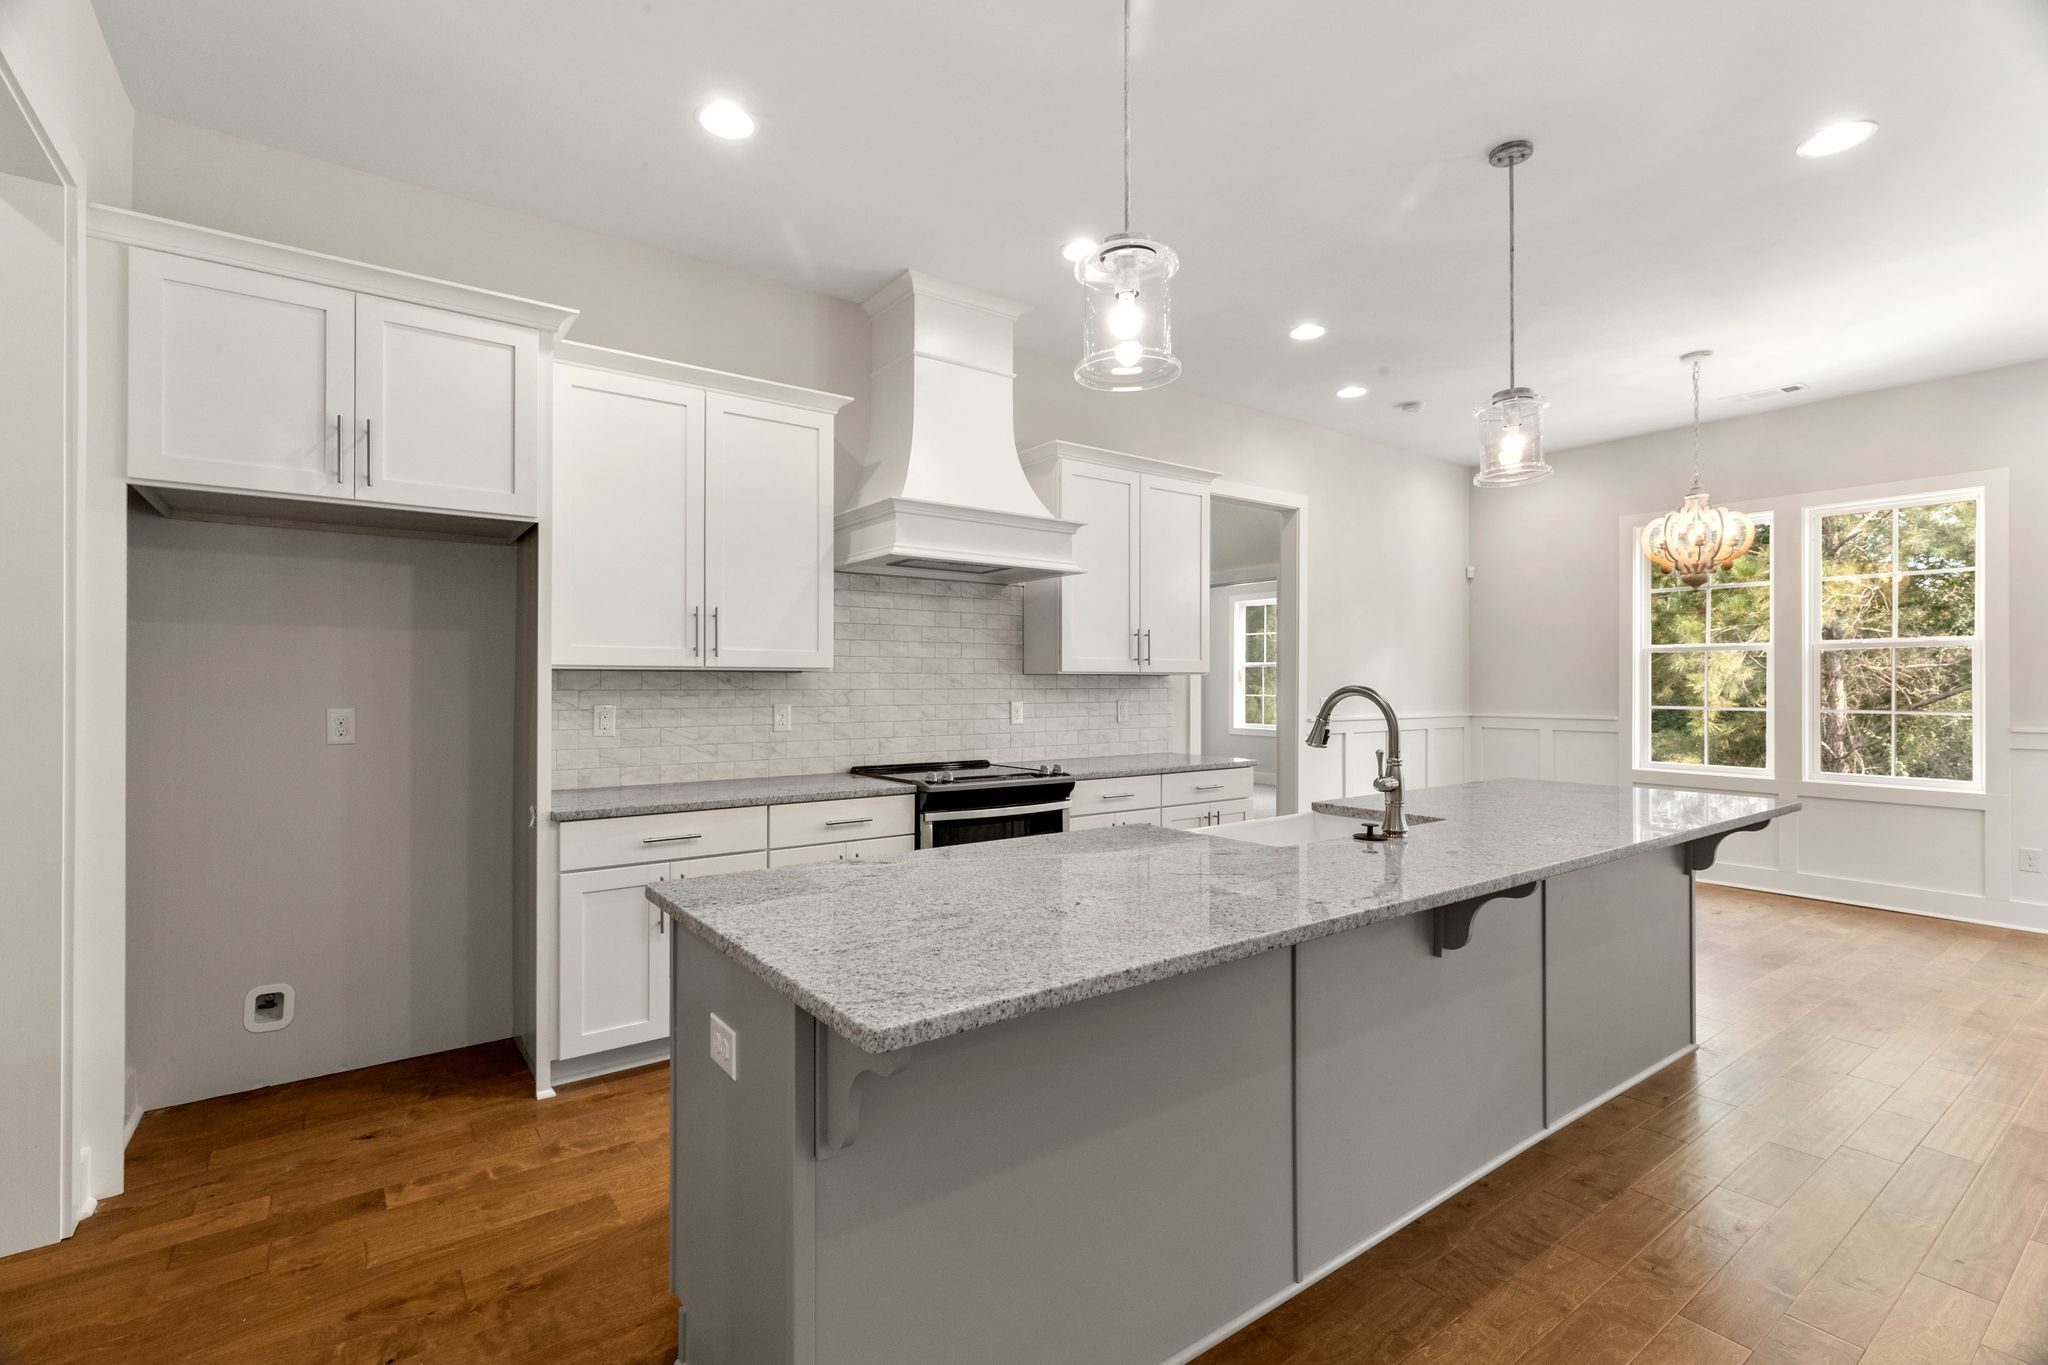 Kitchen featured in The Fullerton By Holland Homes in Birmingham, AL